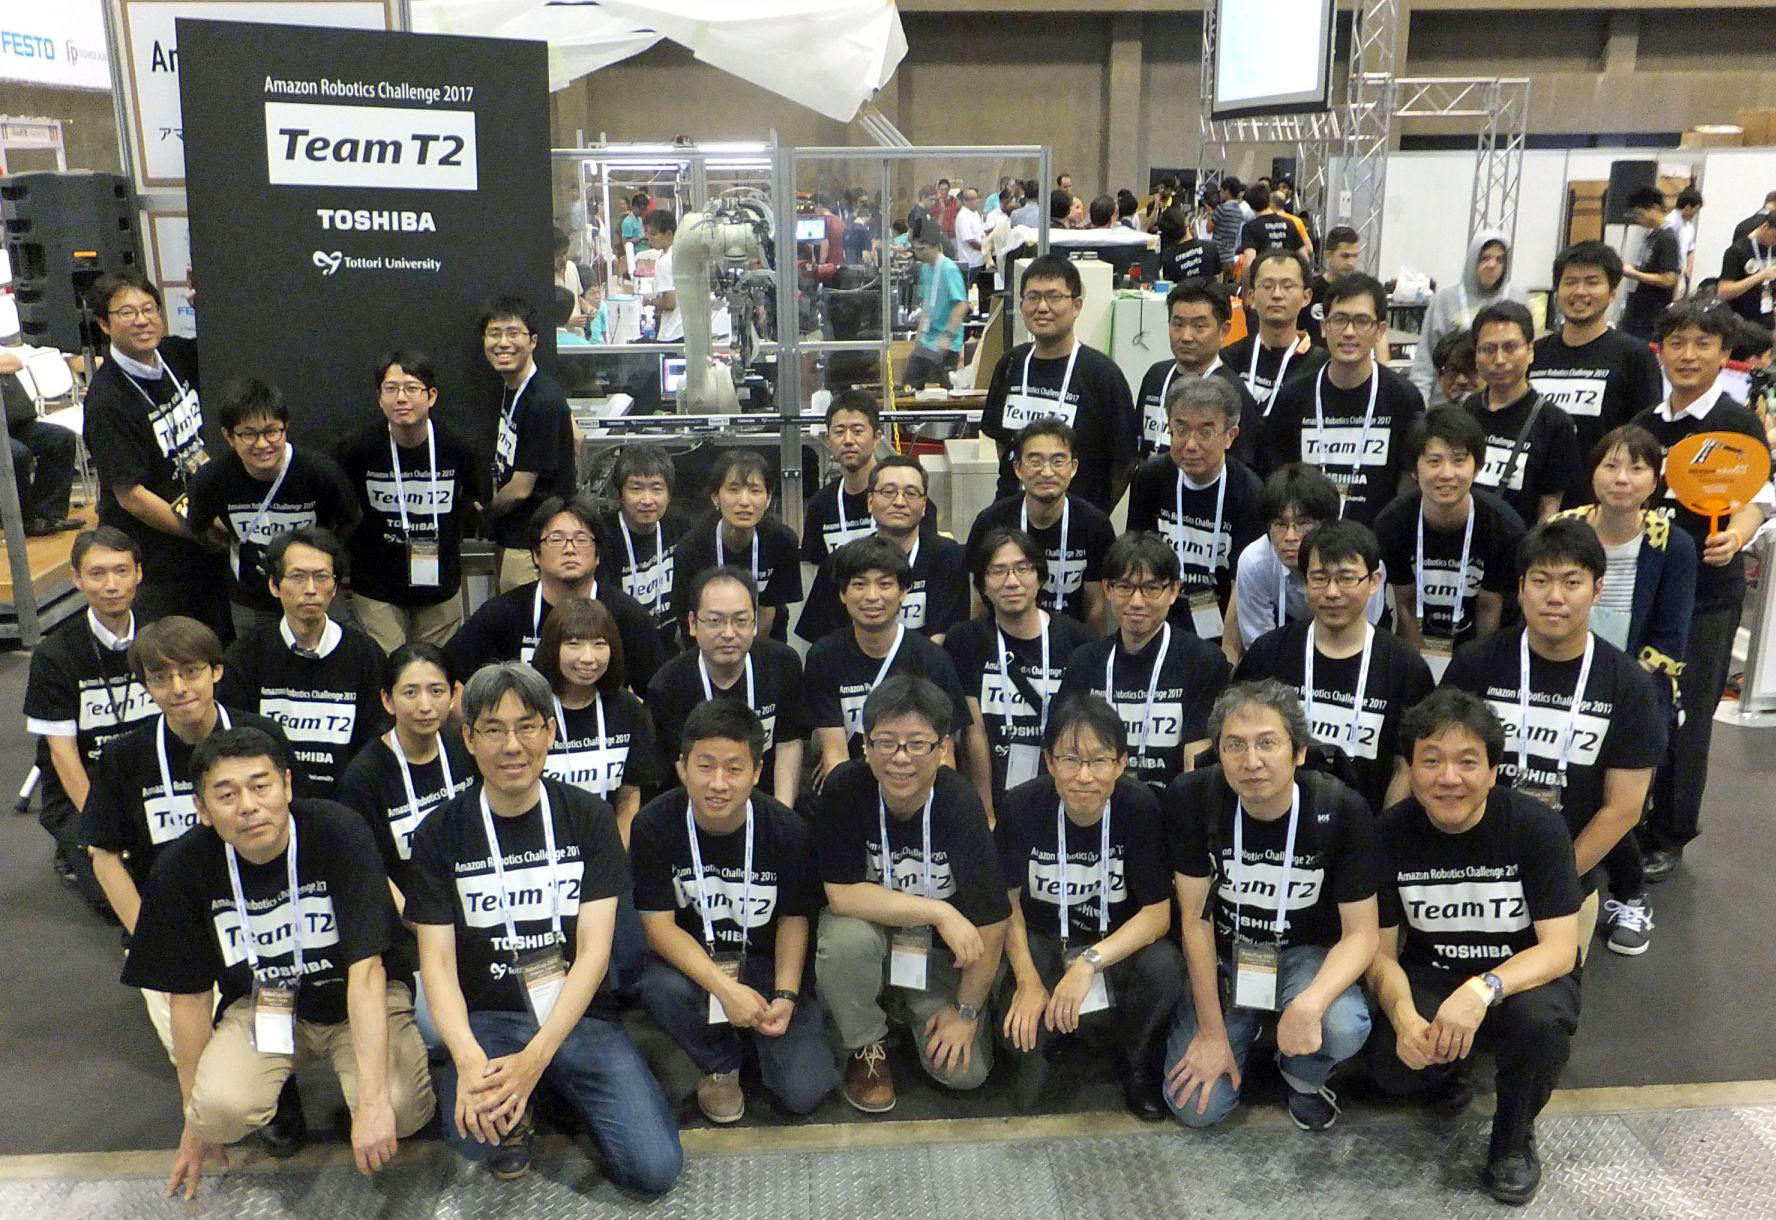 Group Photo of Team T2